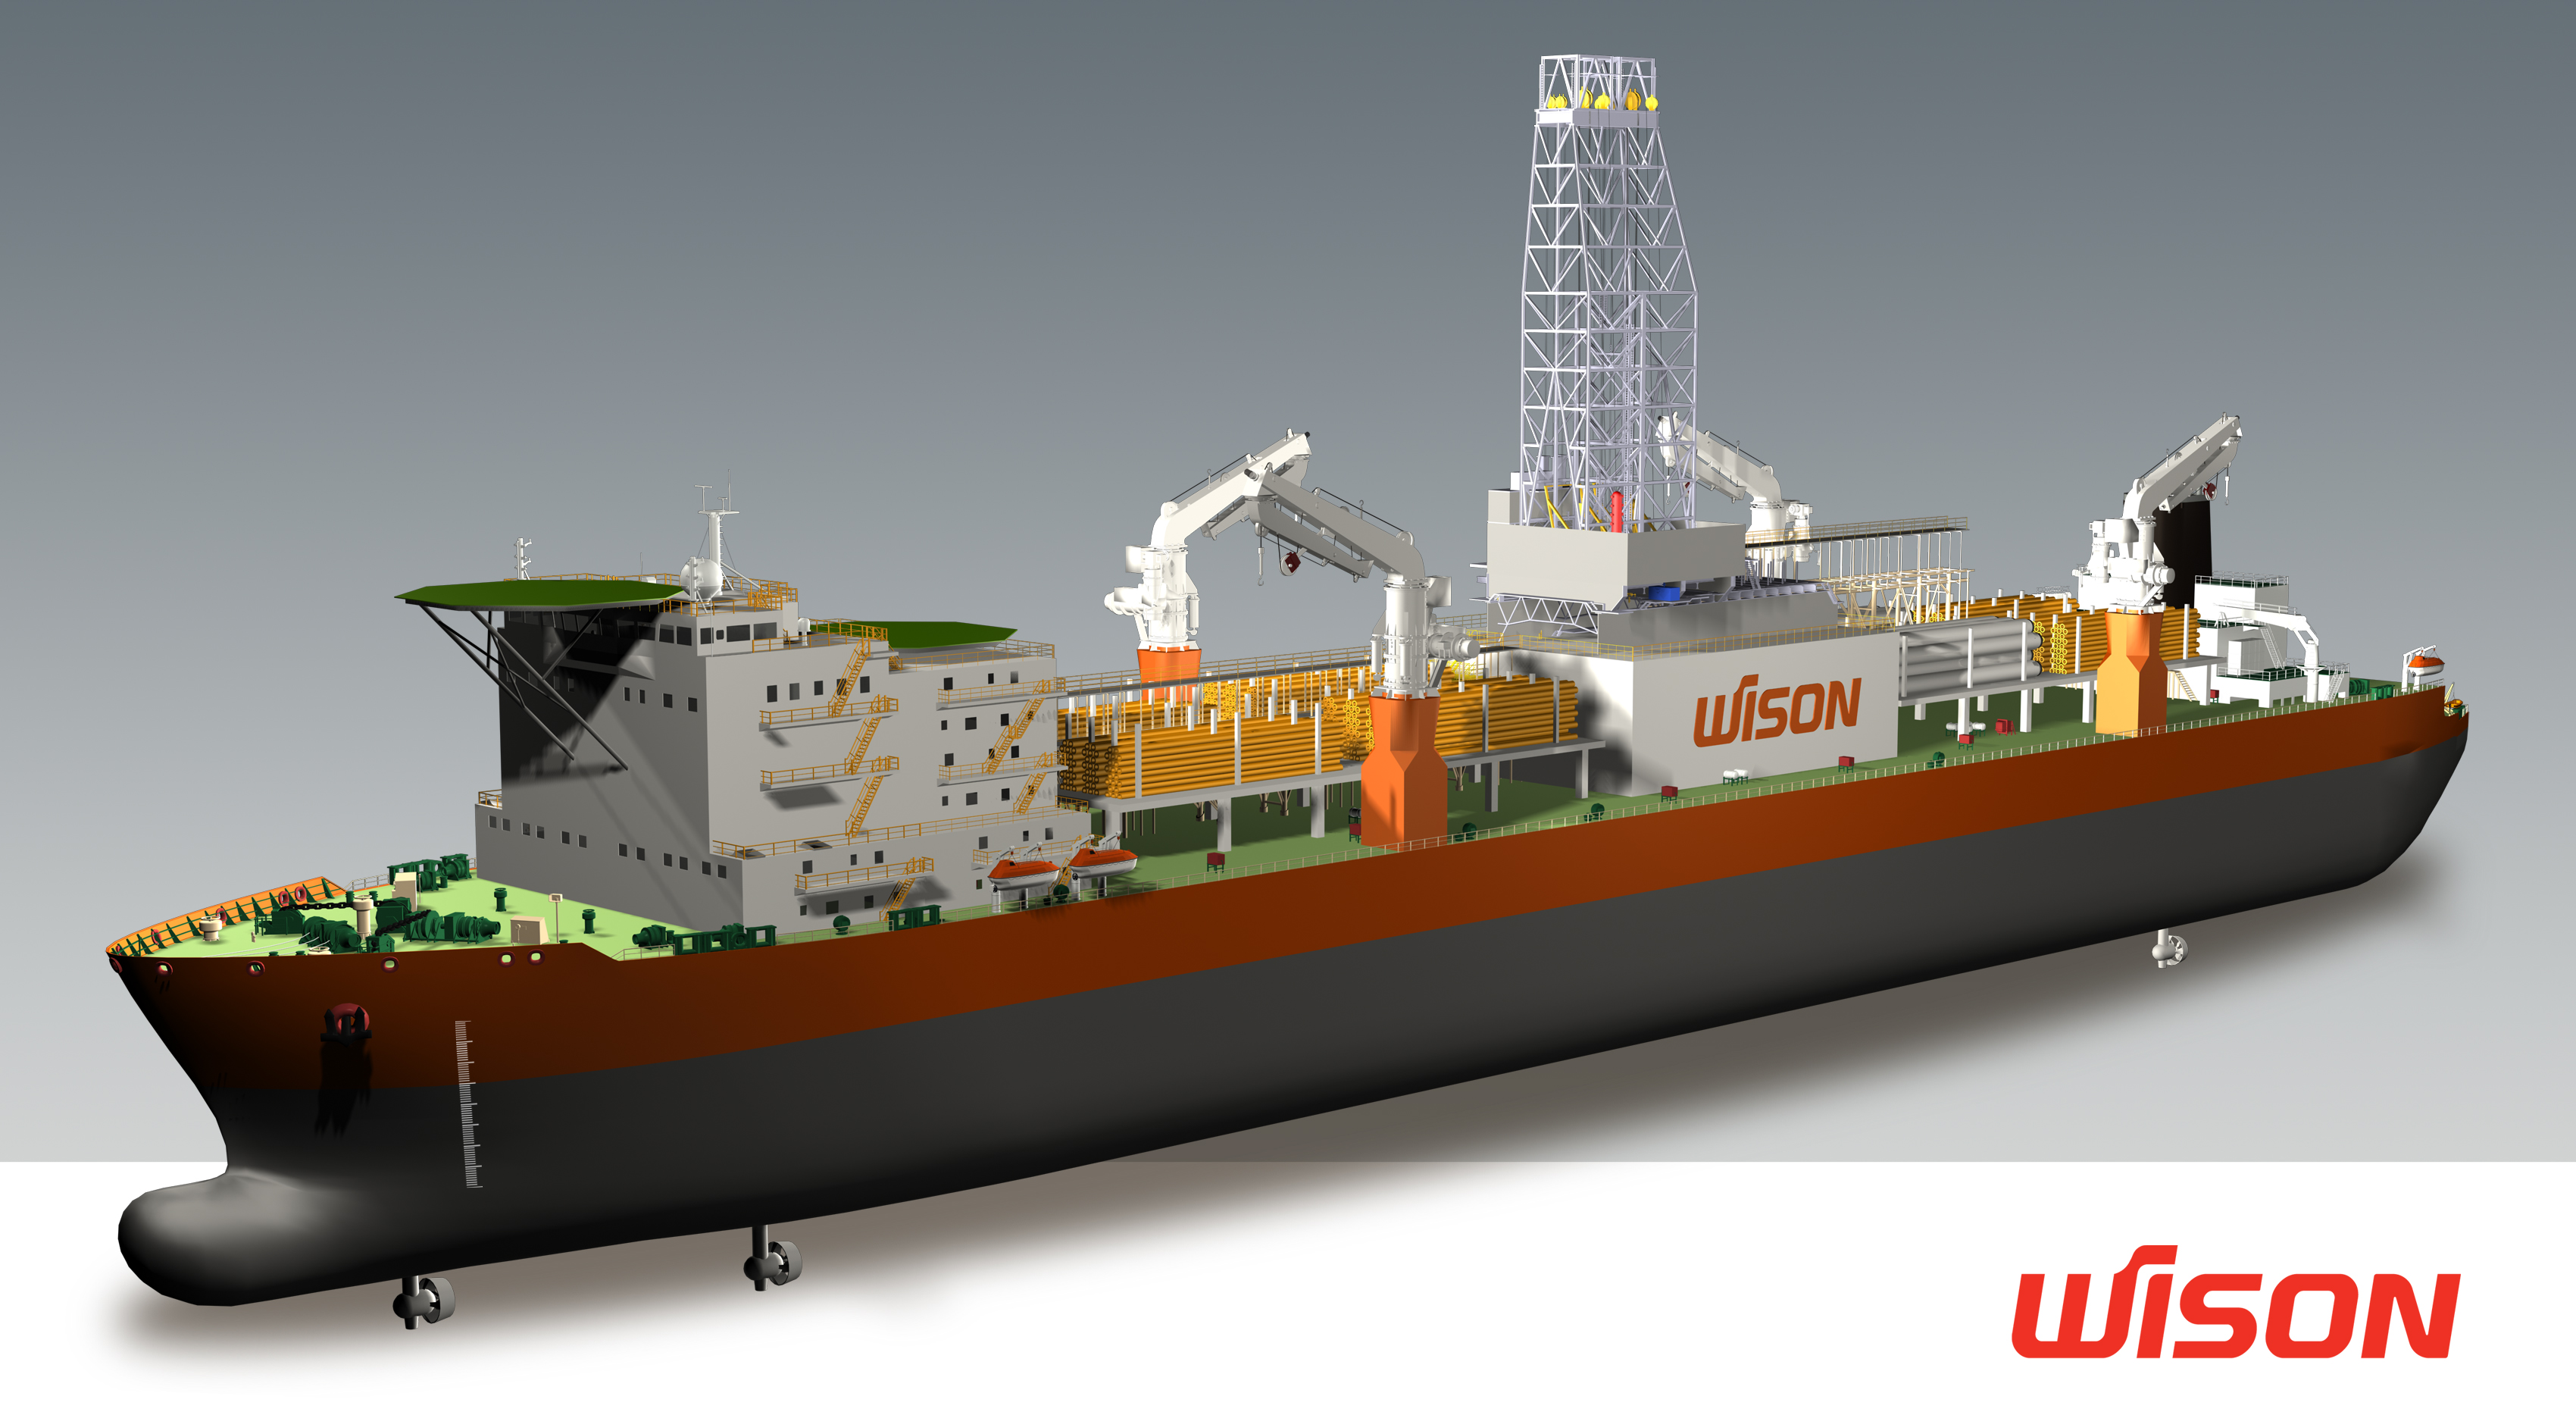 Wison_Drillship_Comp01